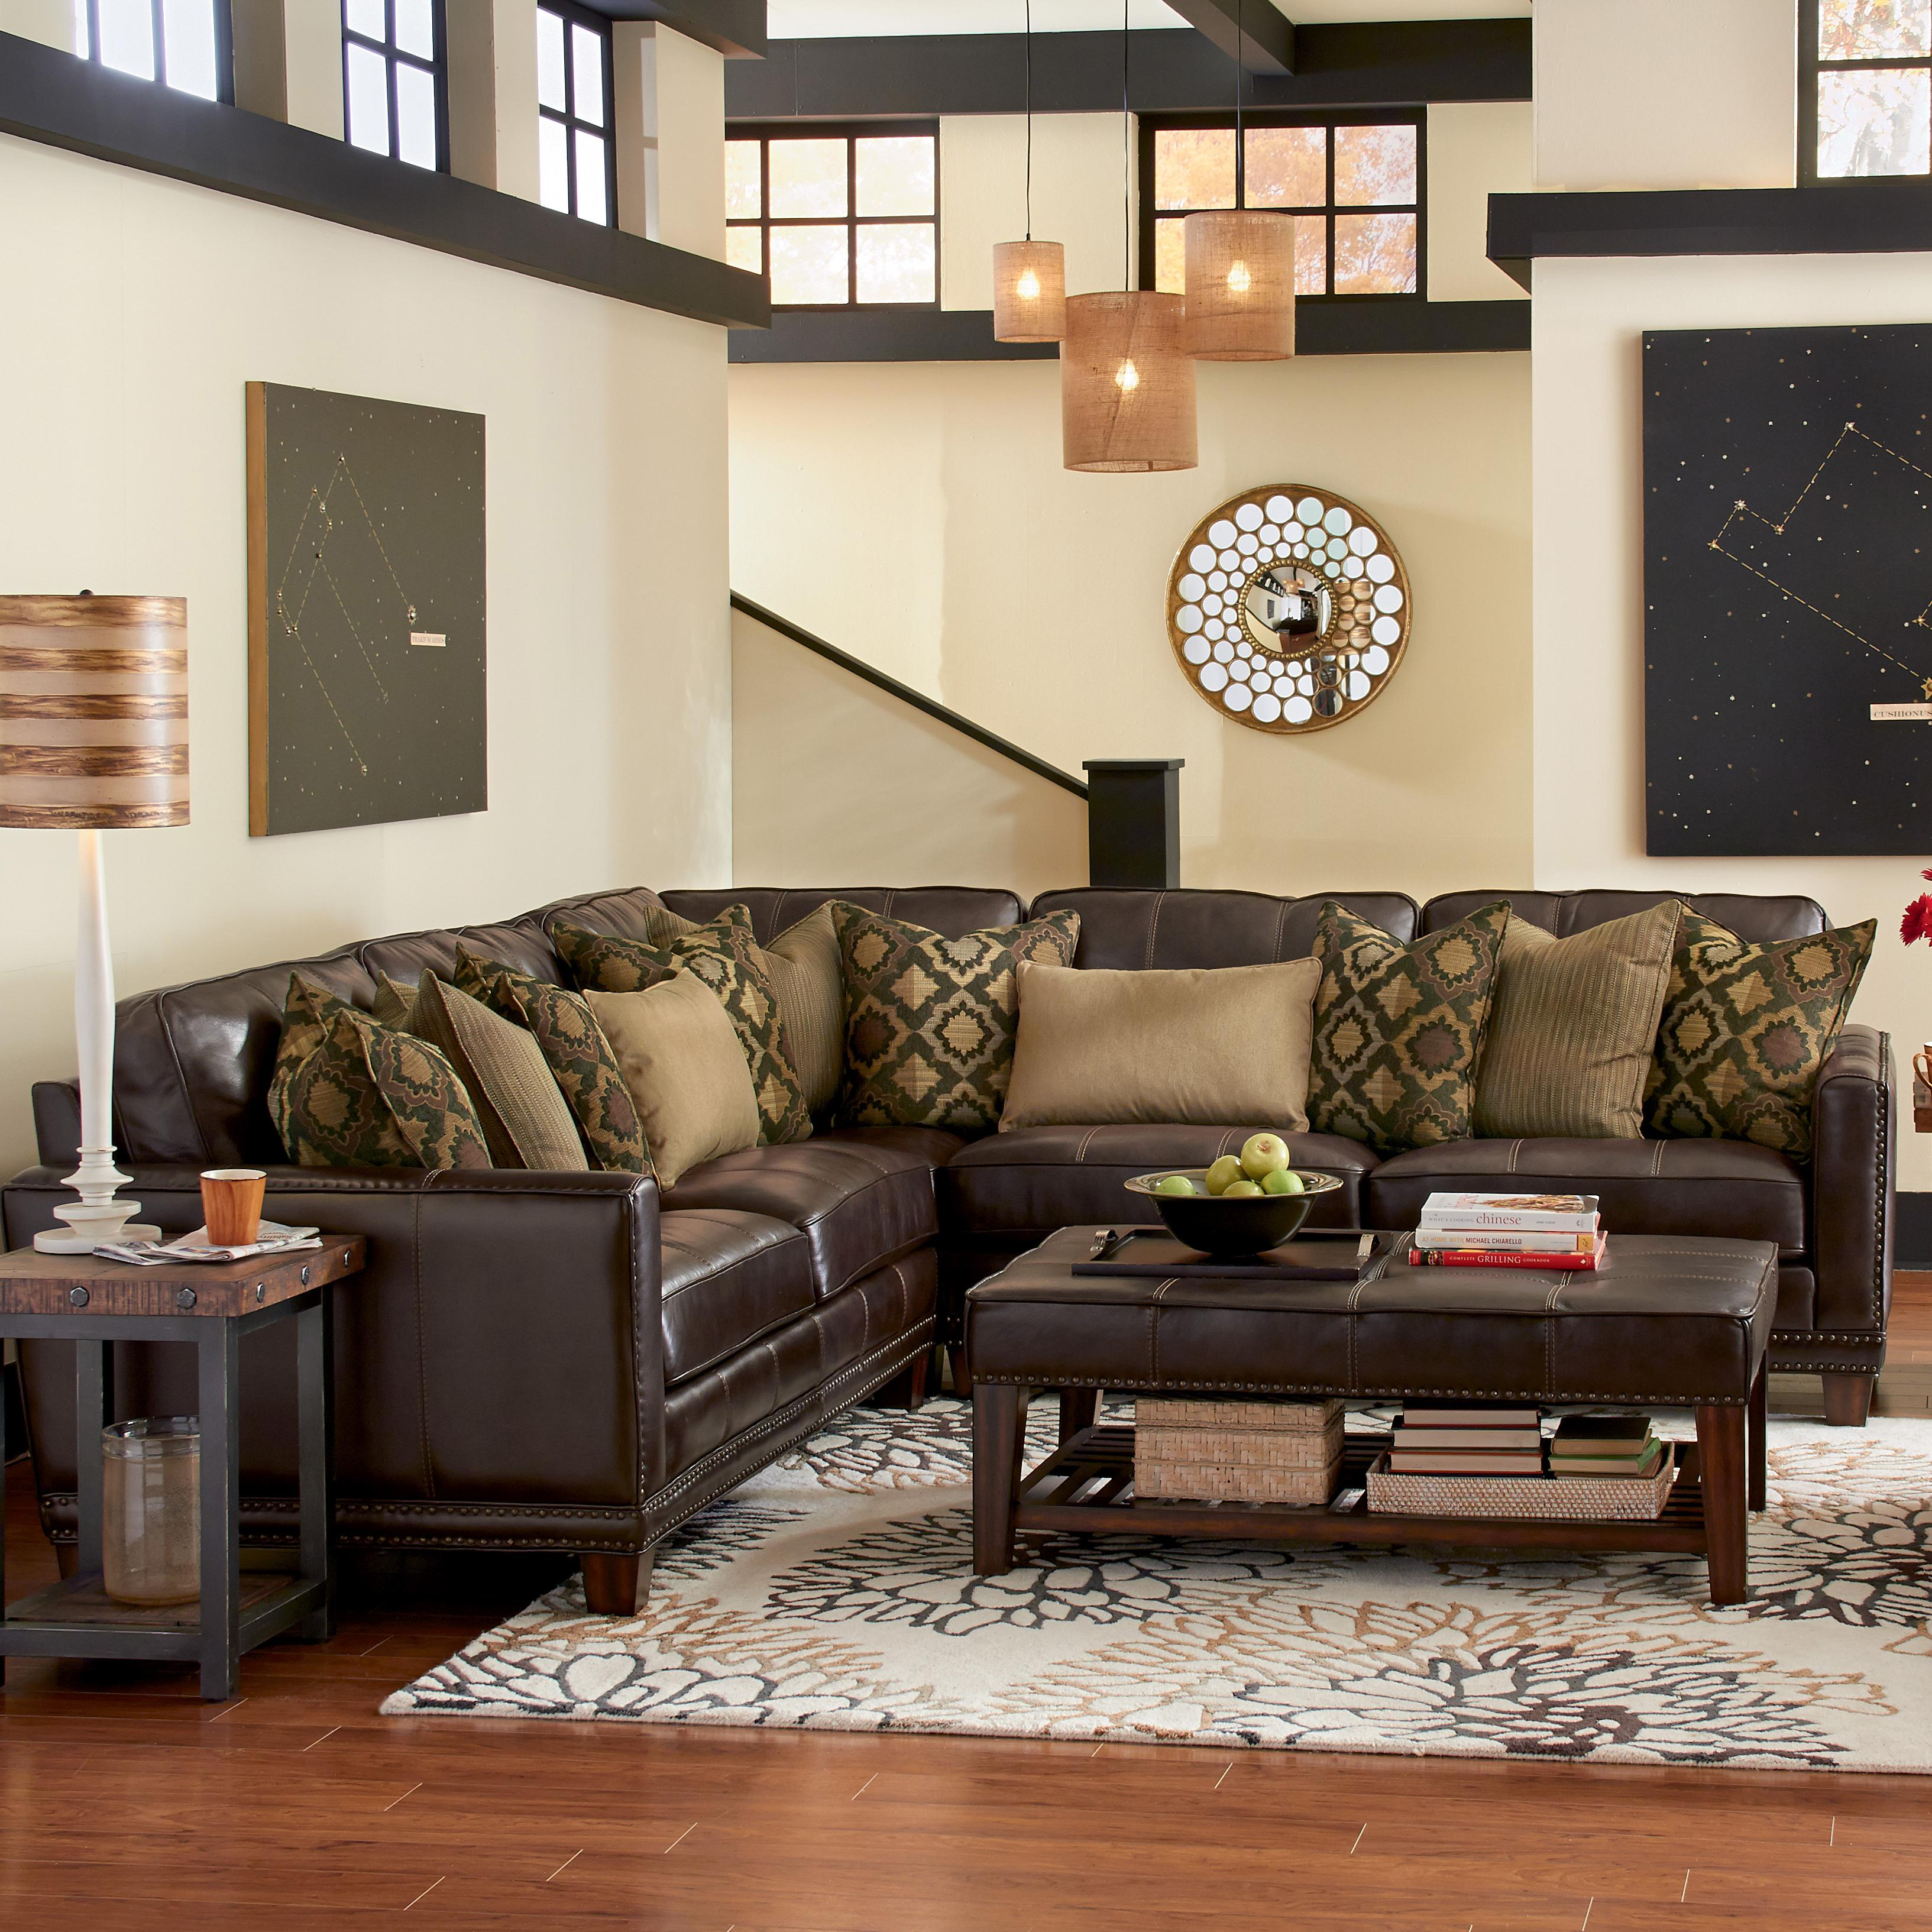 Latitudes - Port Royal 3 Pc Sectional Sofa by Flexsteel at Northeast Factory Direct